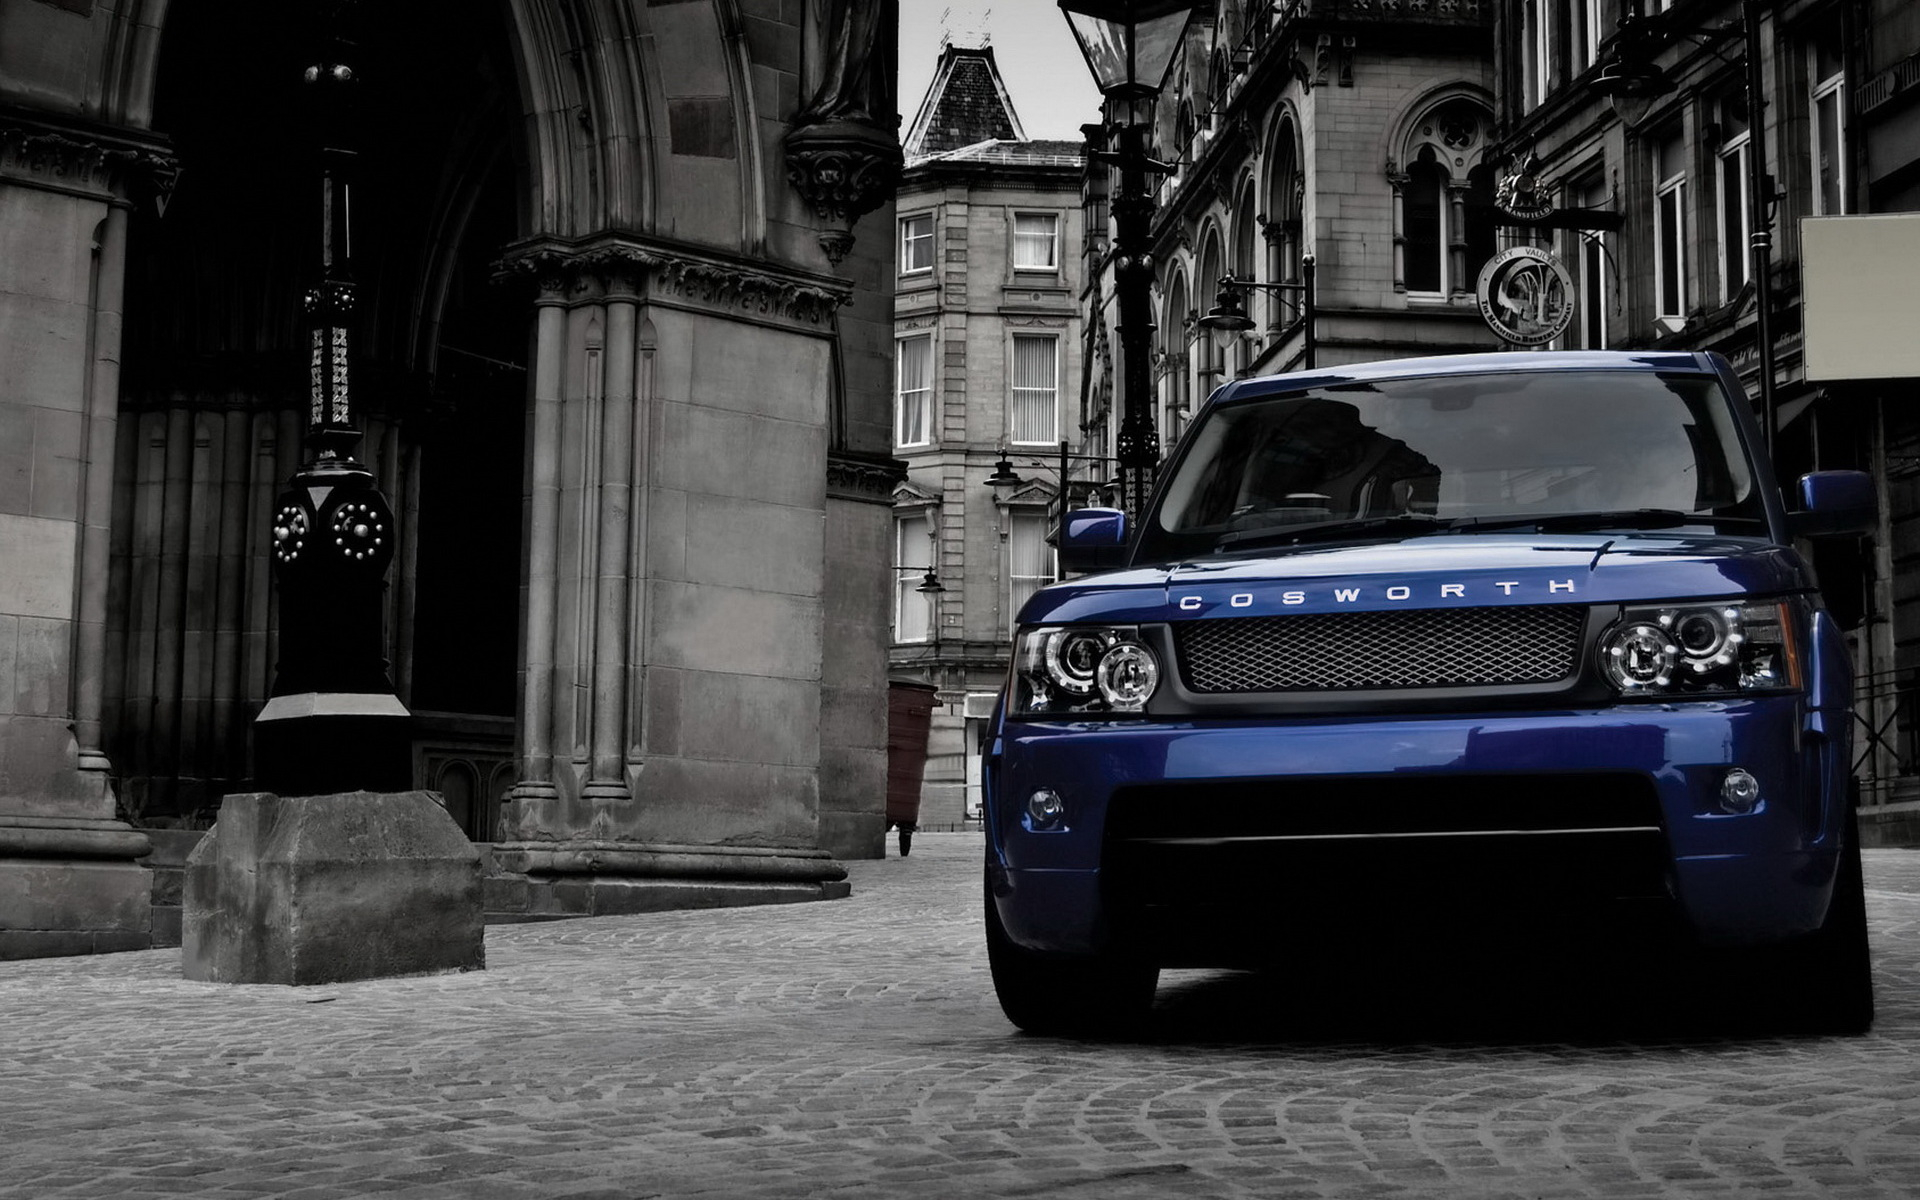 Range Rover Sport Iphone Wallpaper: Range Rover Full HD Wallpaper And Background Image